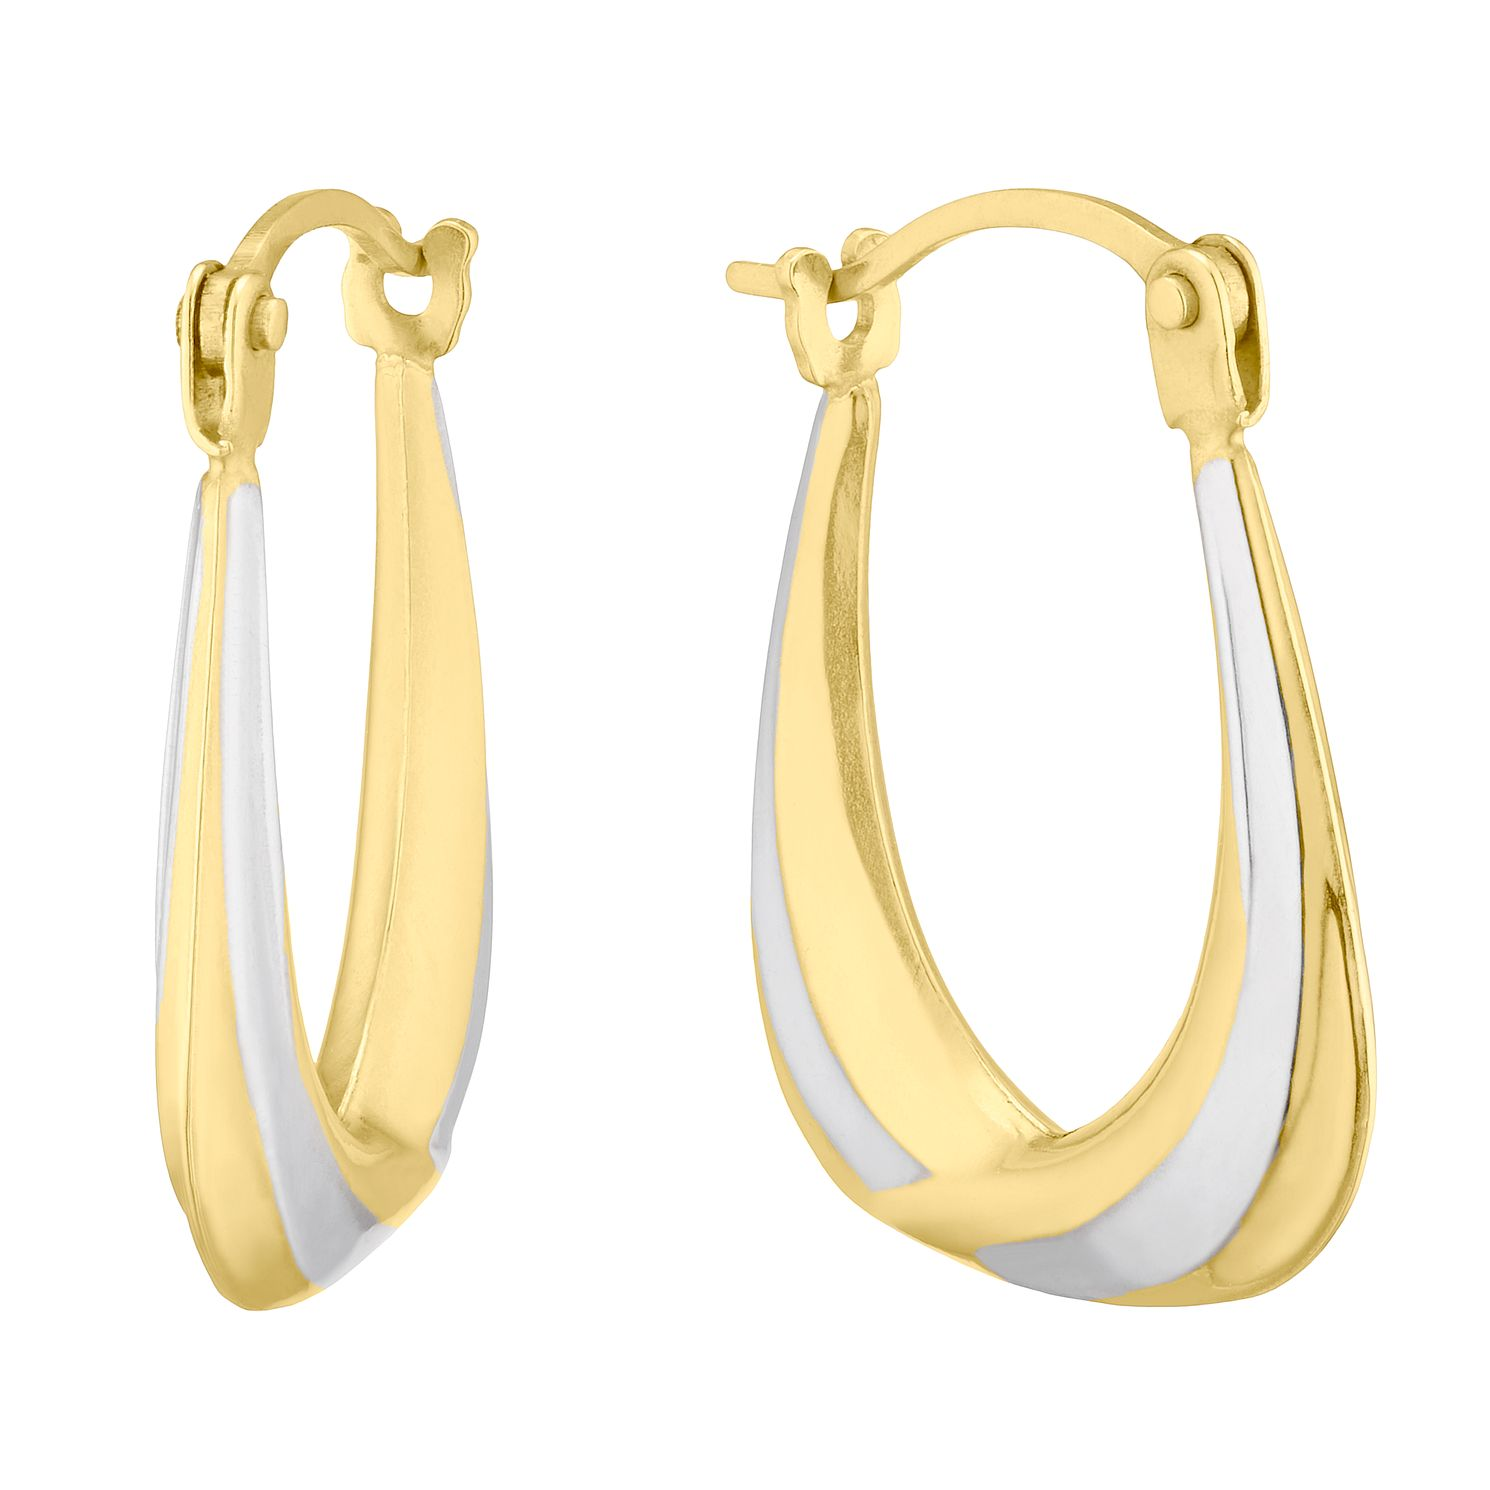 9ct Two Colour Gold Handbag 8mm Hoop Earrings - Product number 4611012